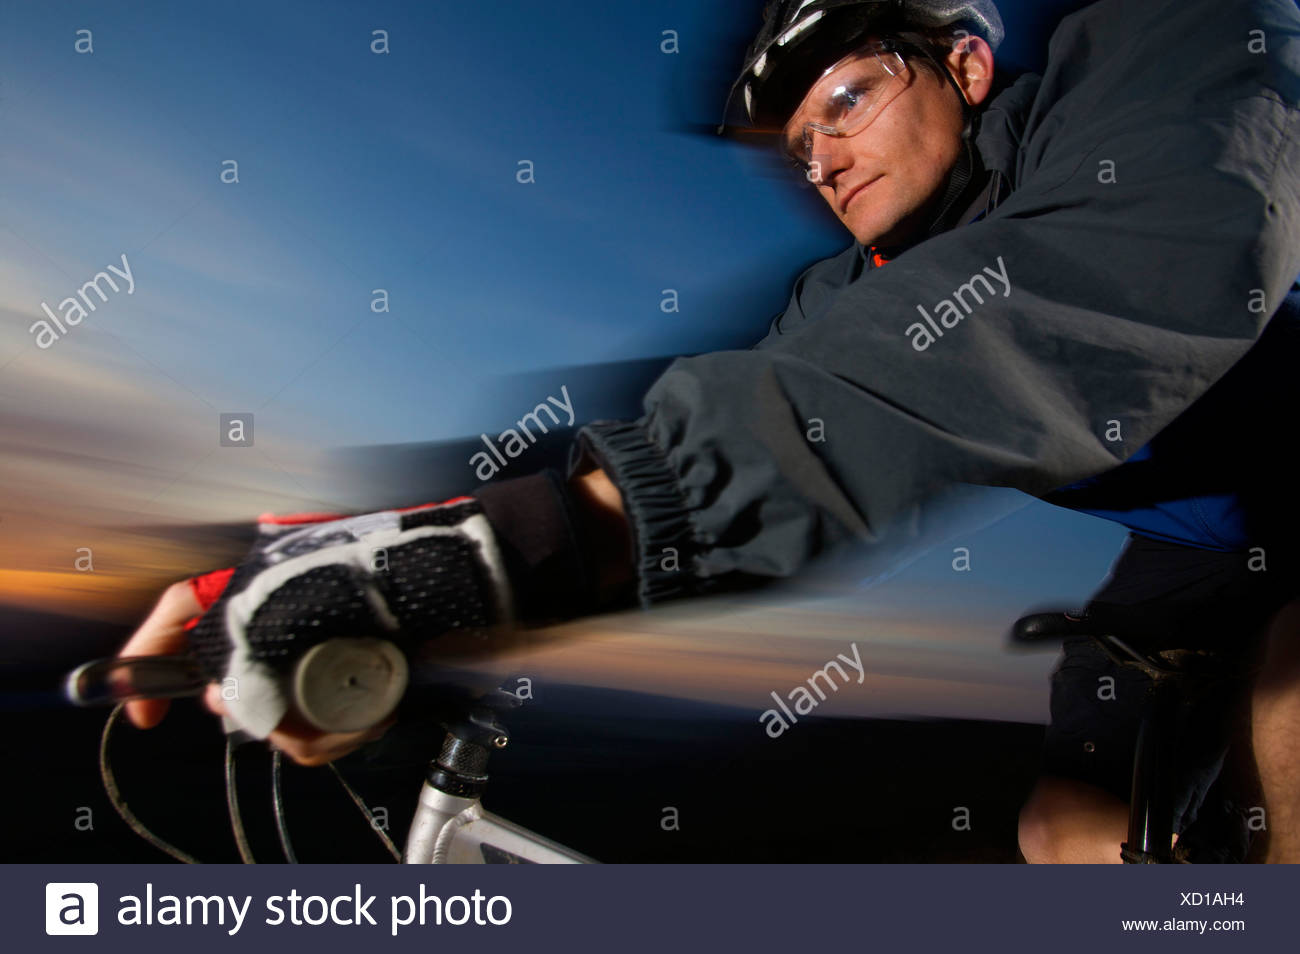 Tight view of a mountain biker. - Stock Image